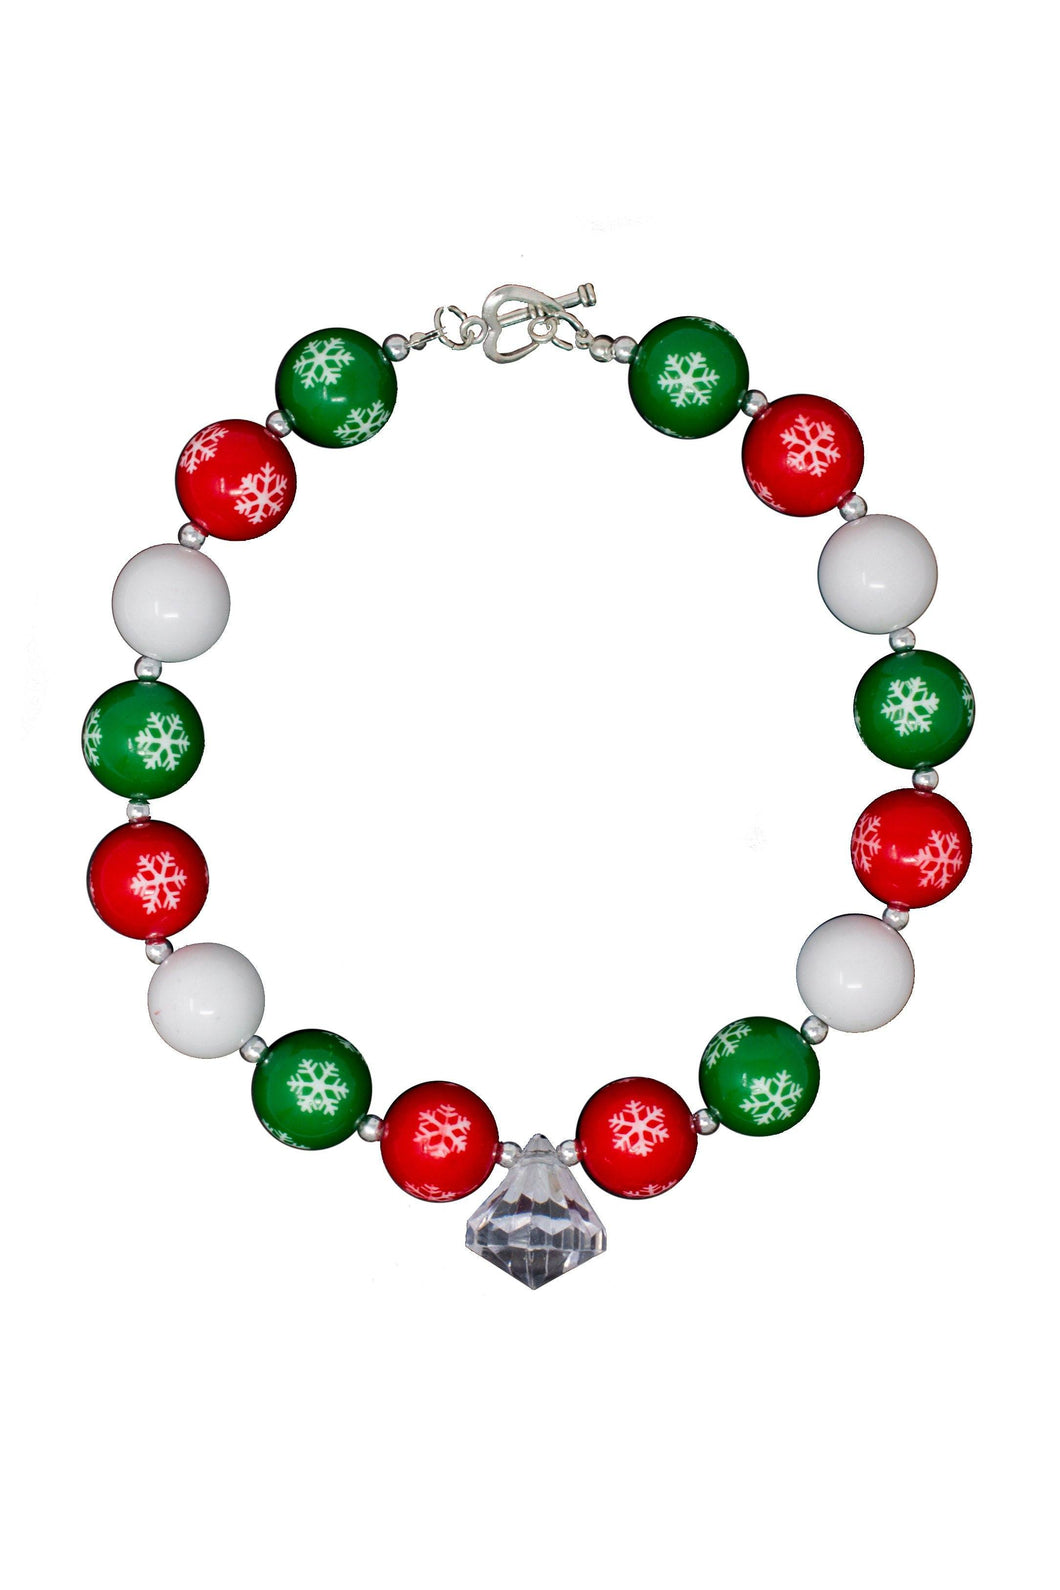 Bubblegum Necklace - Red & Green Snowflake with Charm